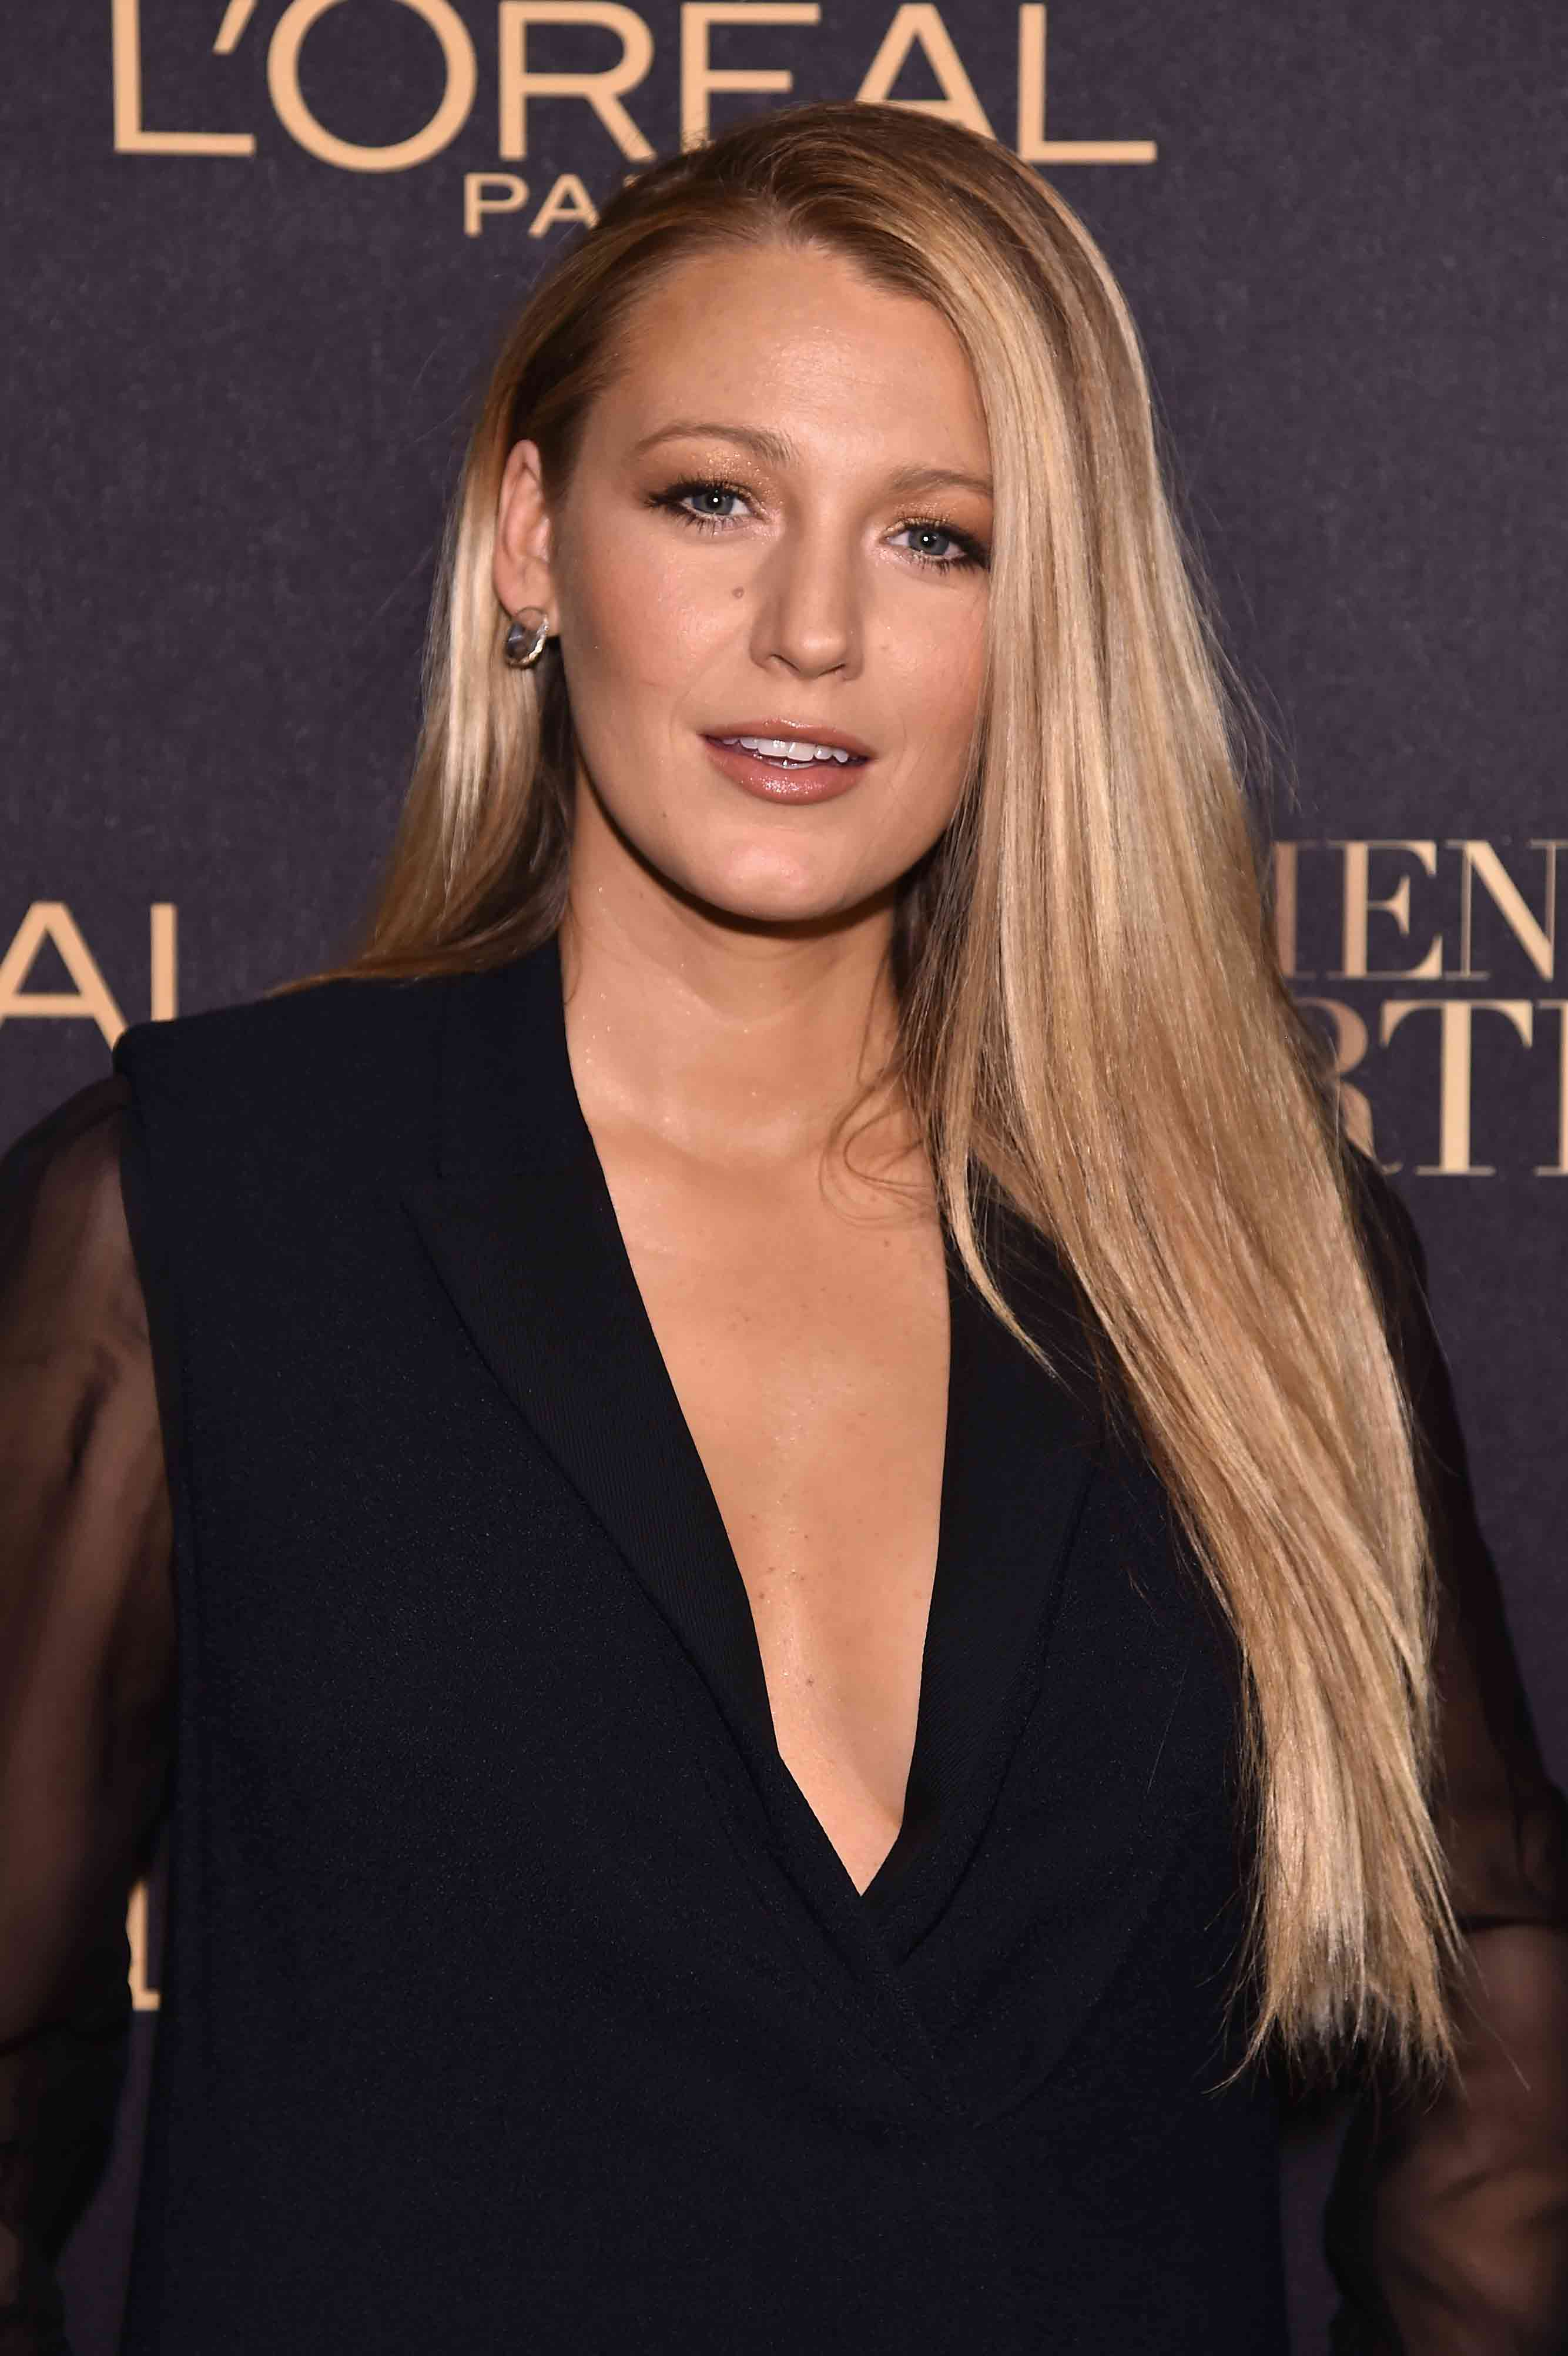 Blake Lively made her first red carpet appearance since ...